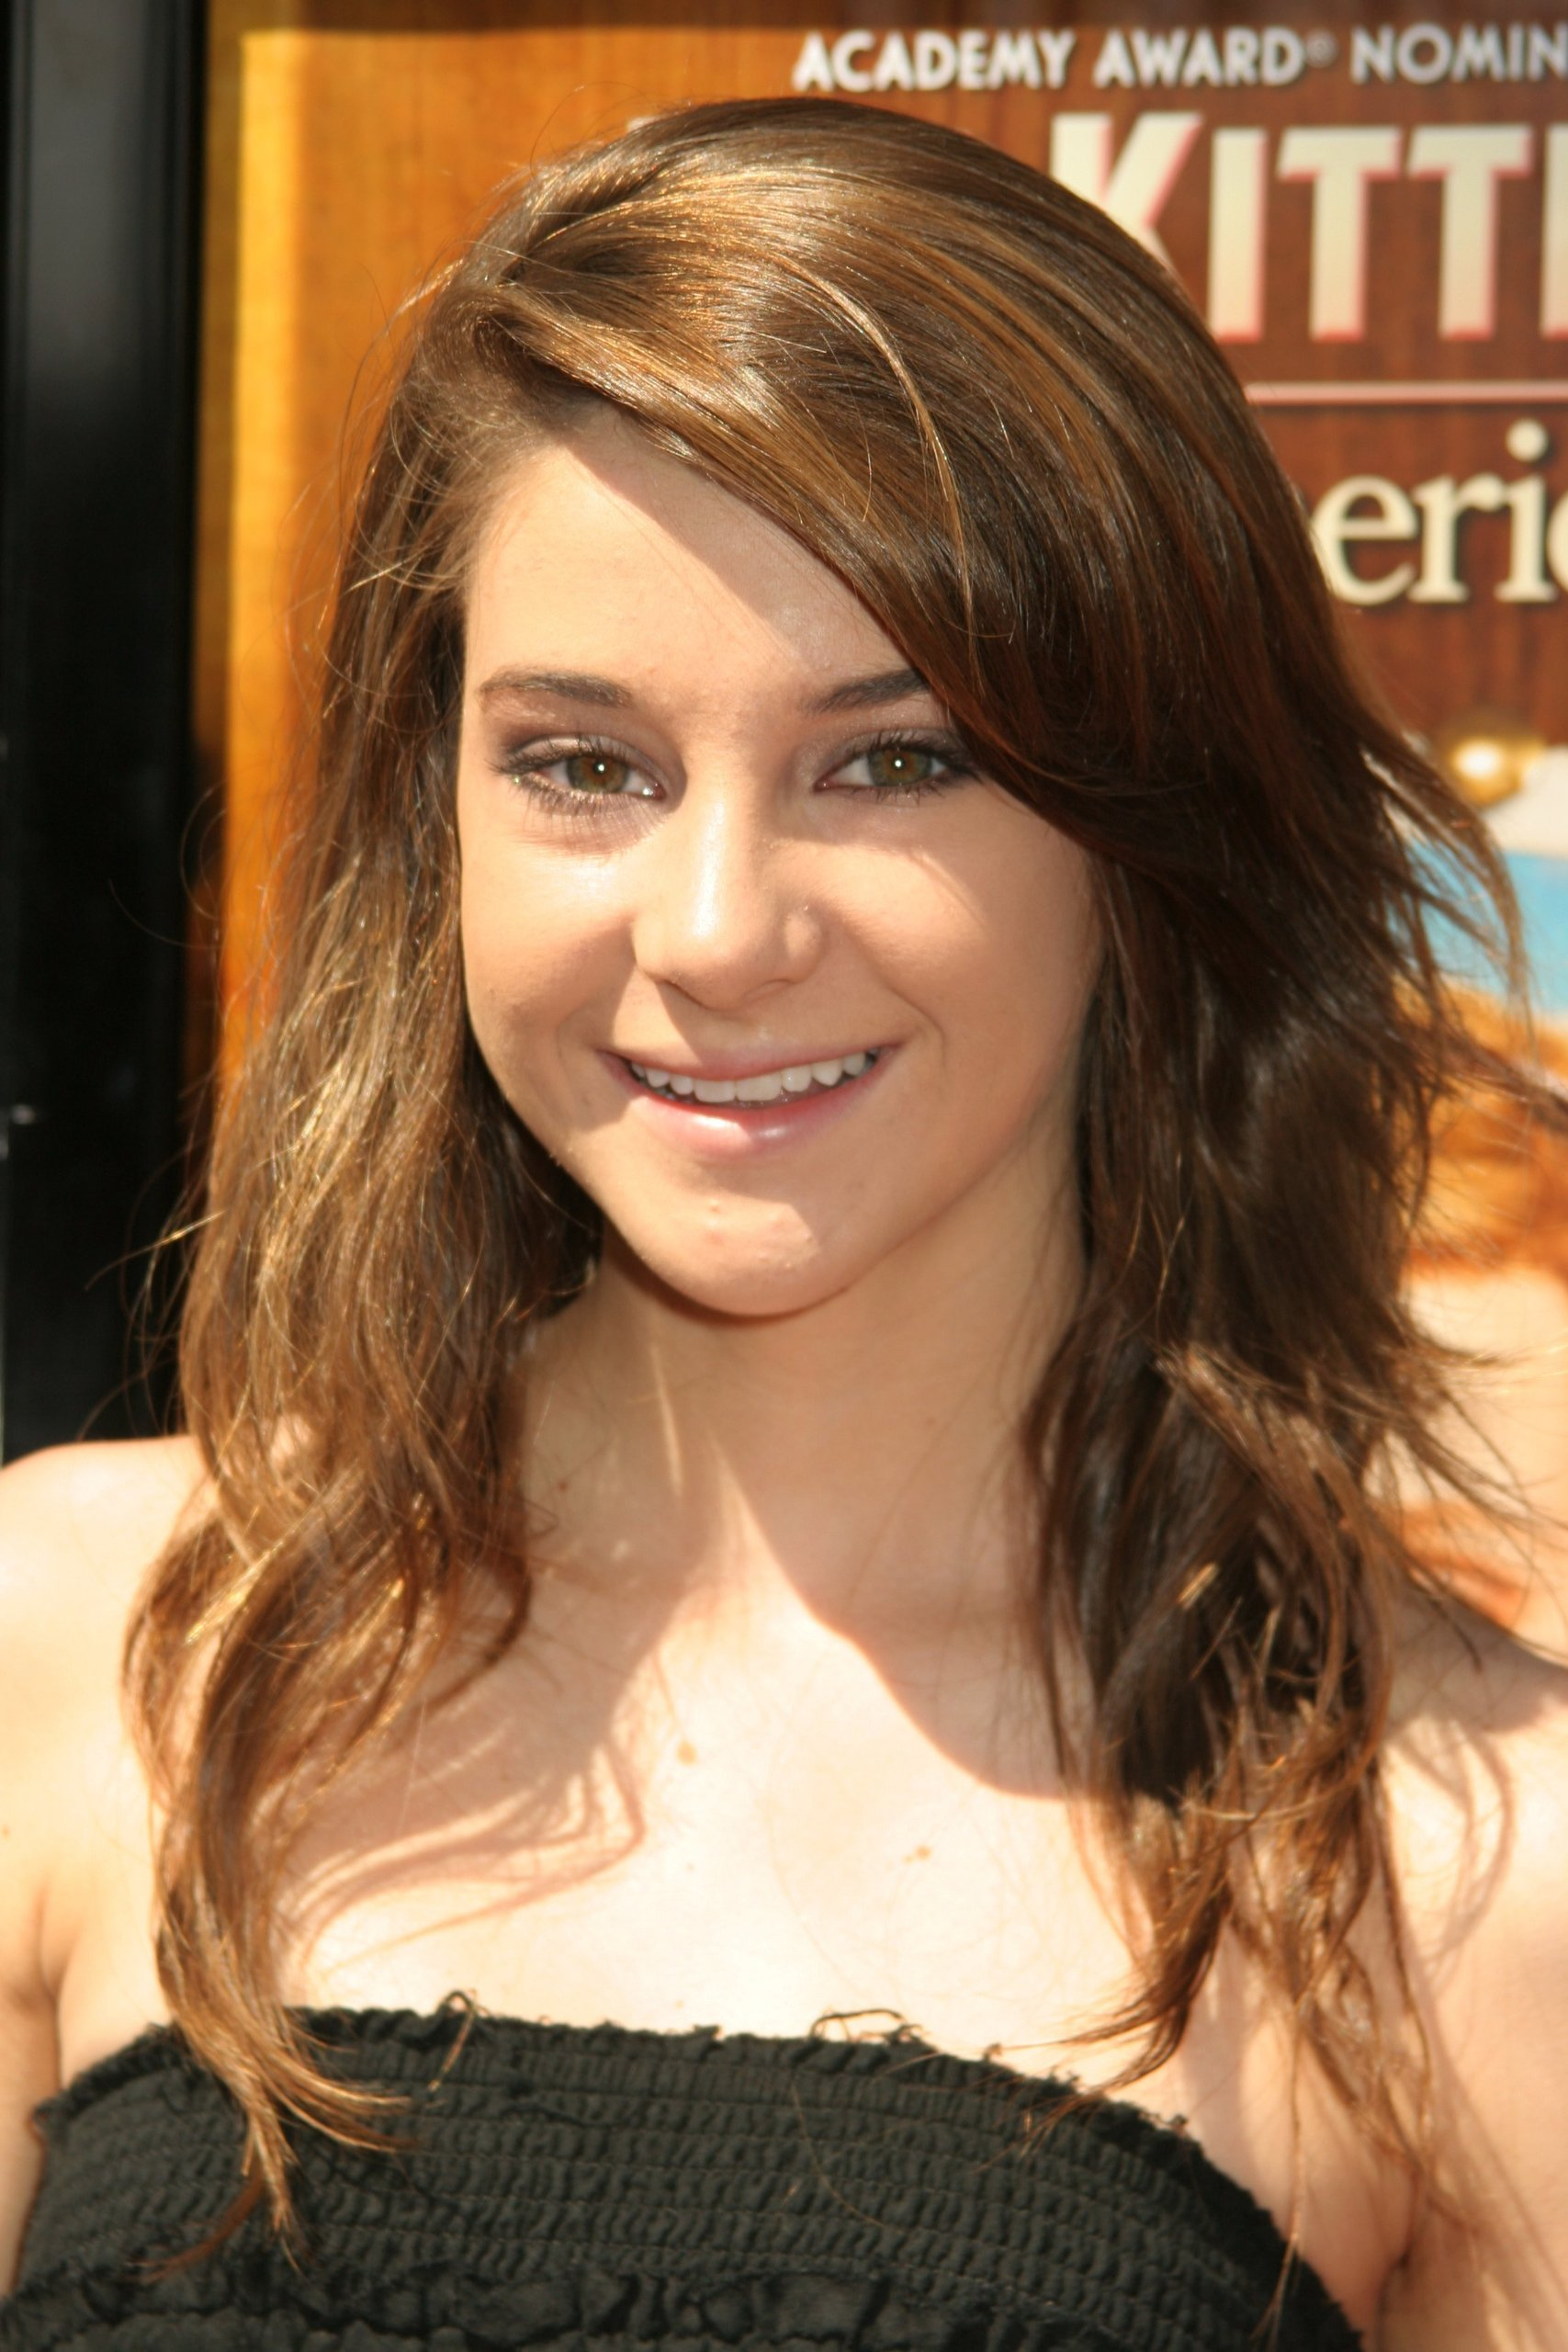 Shailene Woodley - Wallpaper Actress